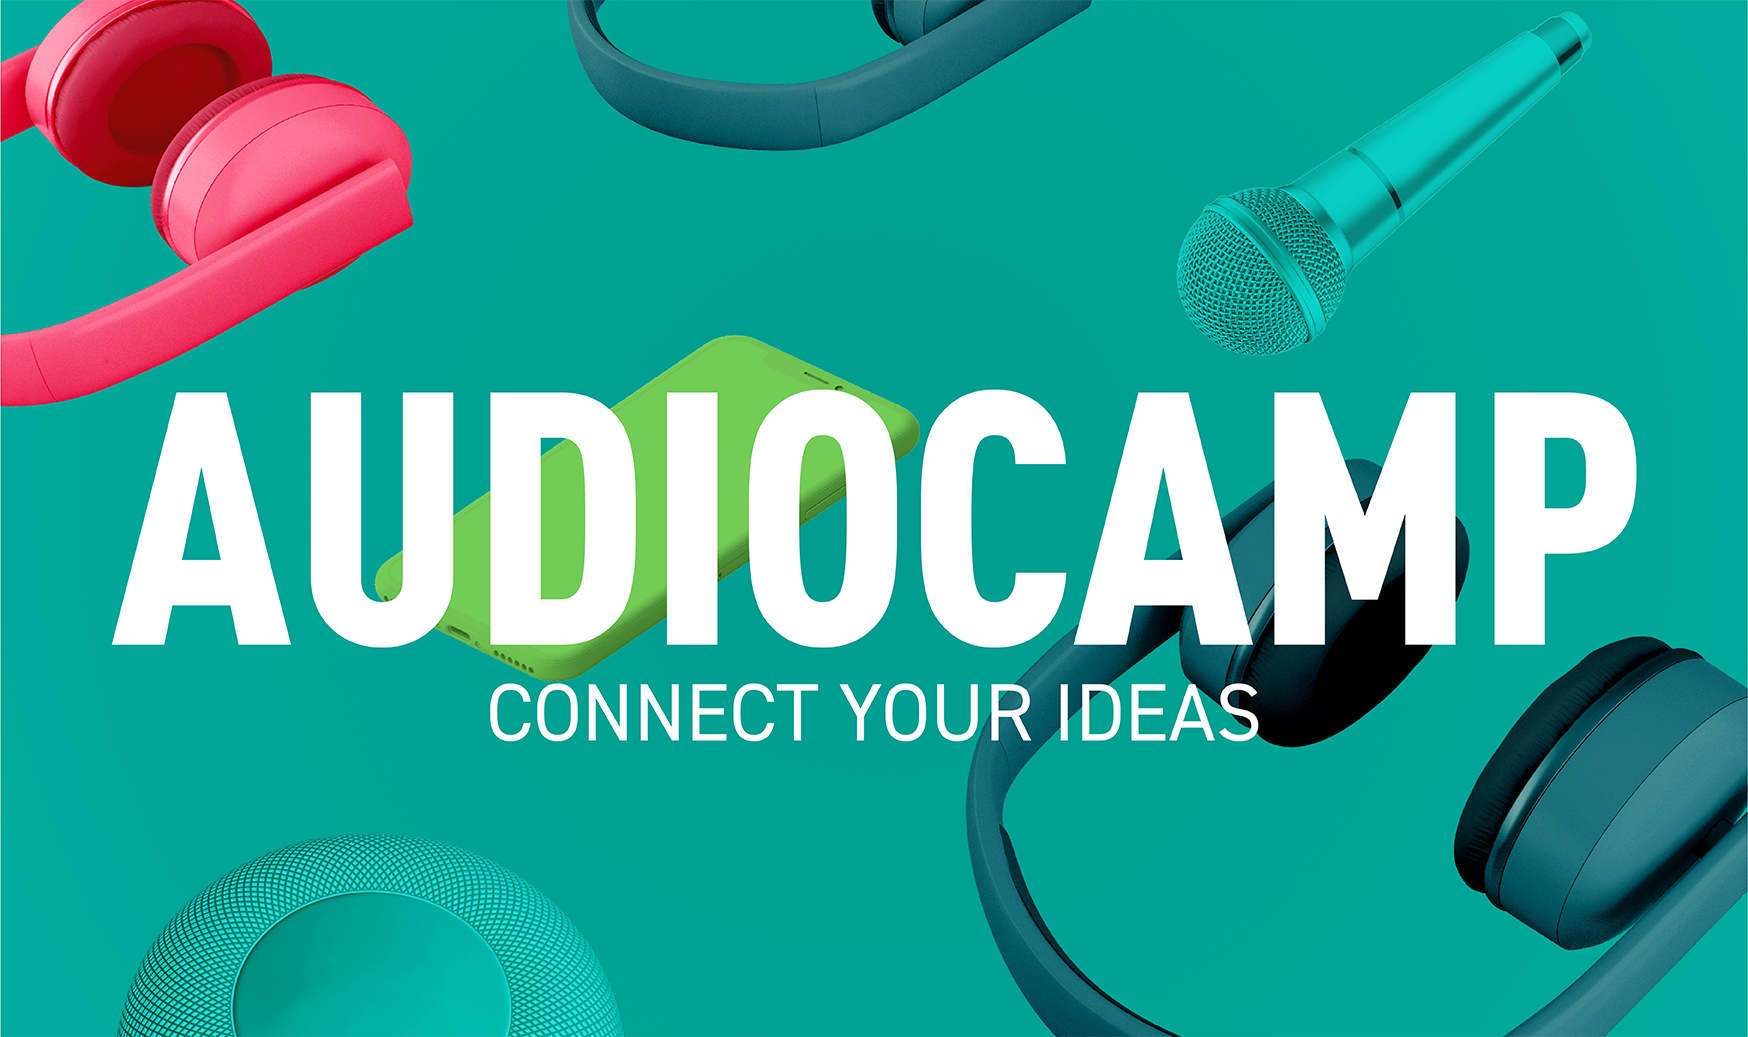 Visual zum Audiocamp 2020.